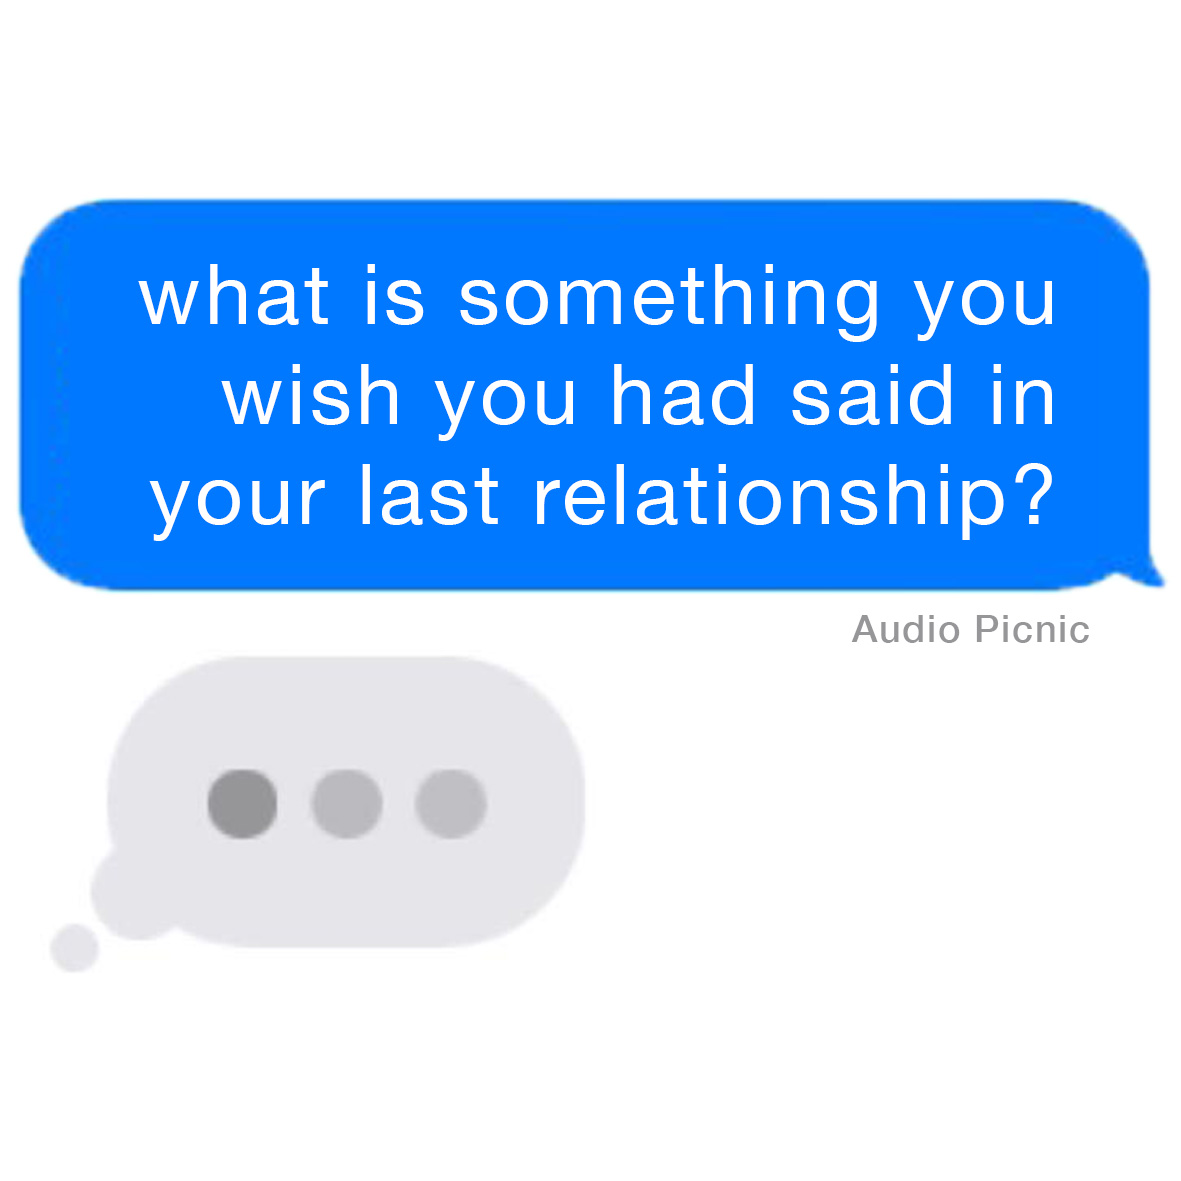 When was your last relationship